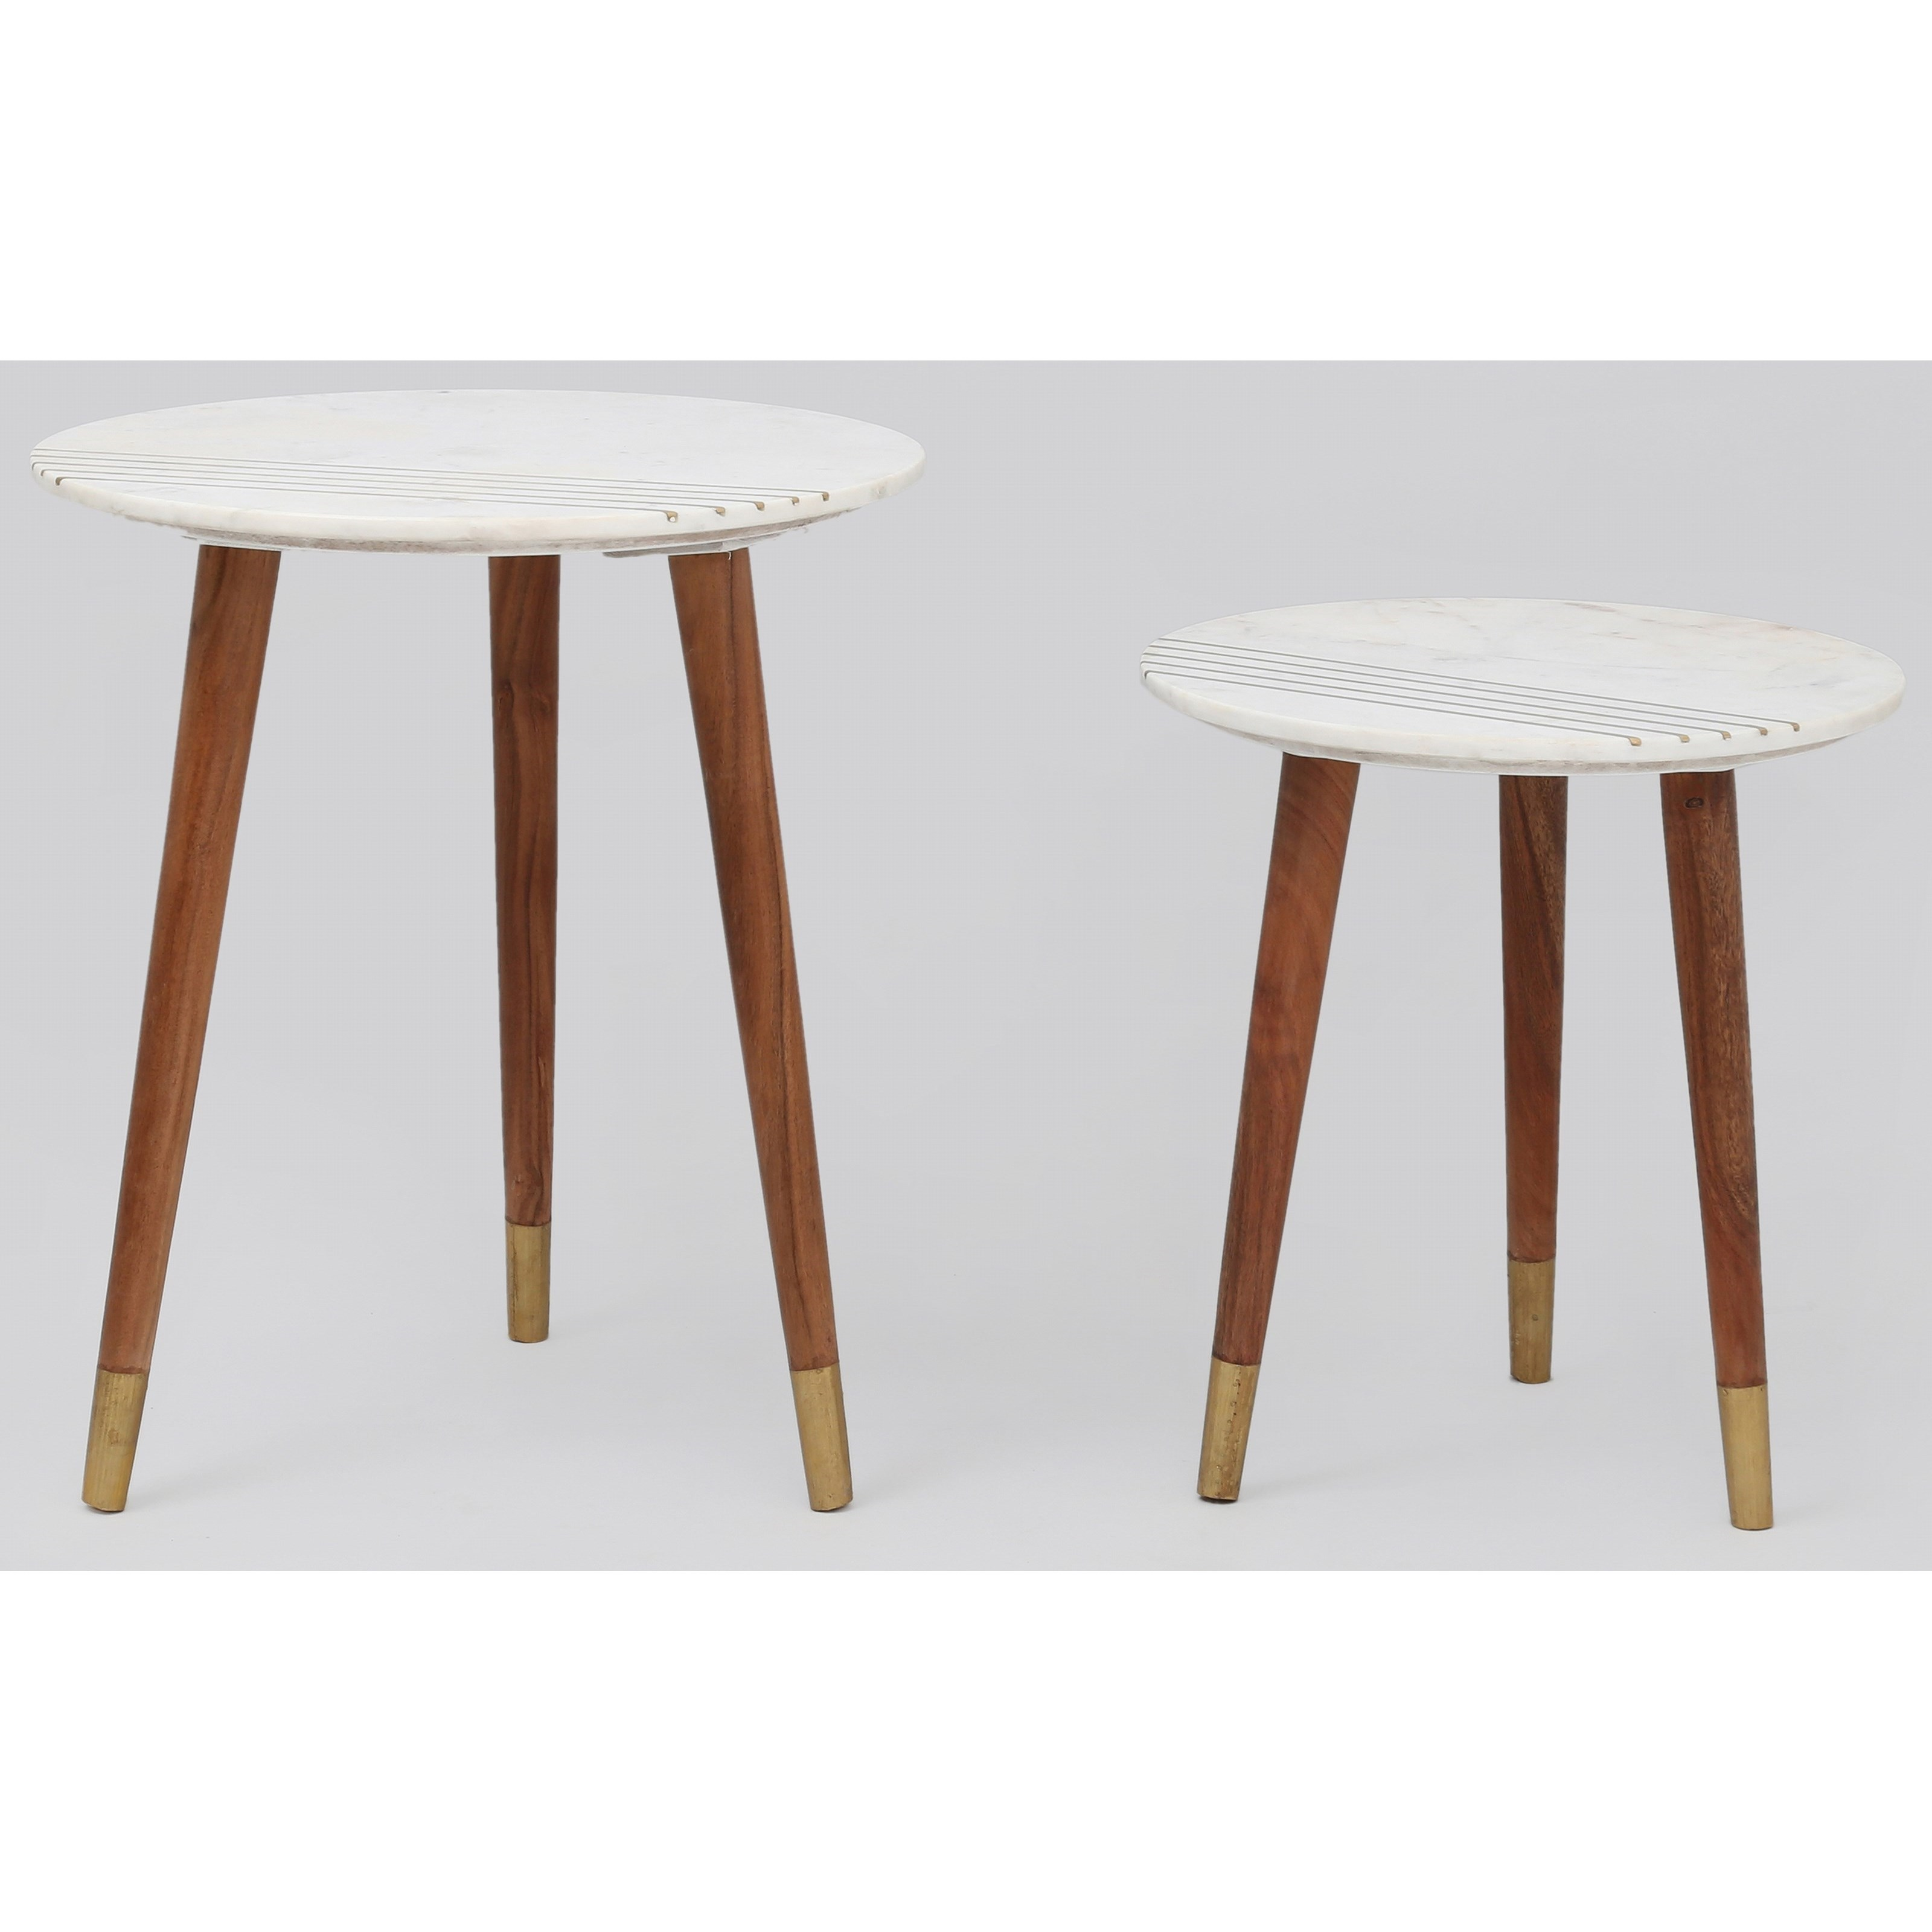 Terrace 2-Piece Nesting Table Group by Steve Silver at Northeast Factory Direct